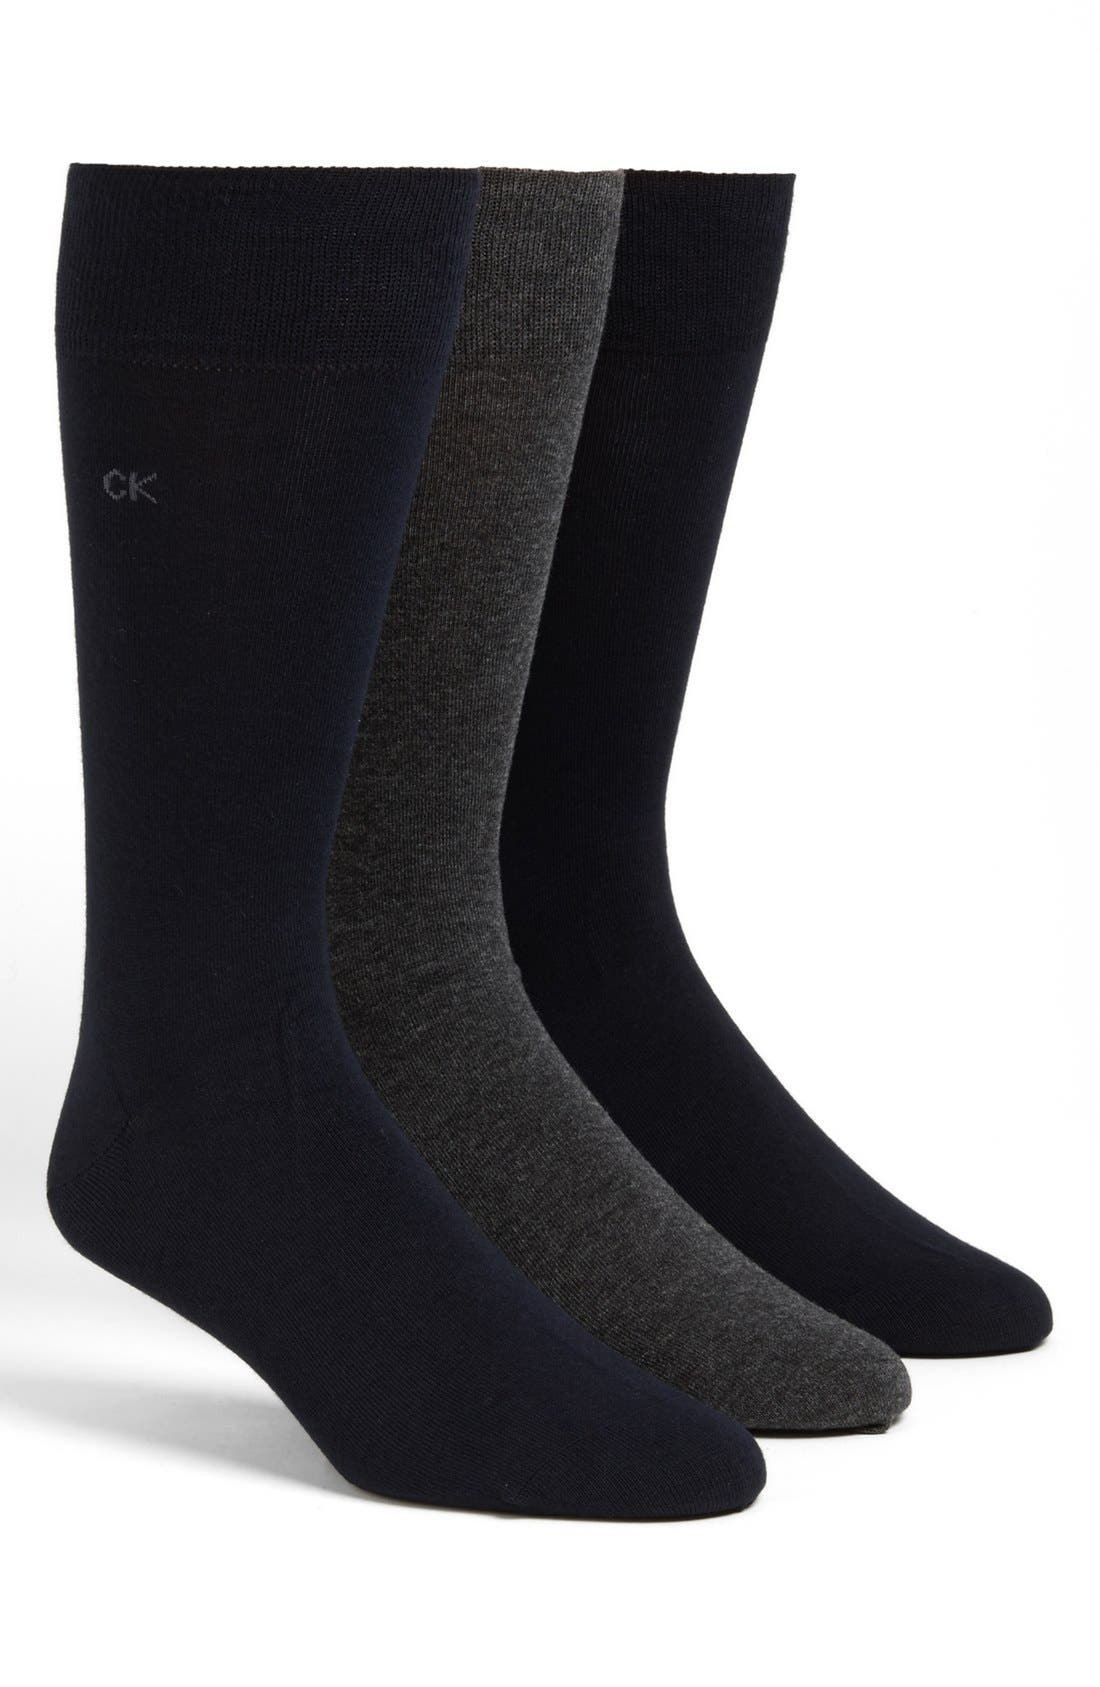 Assorted 3-Pack Socks,                         Main,                         color, Assorted Blue